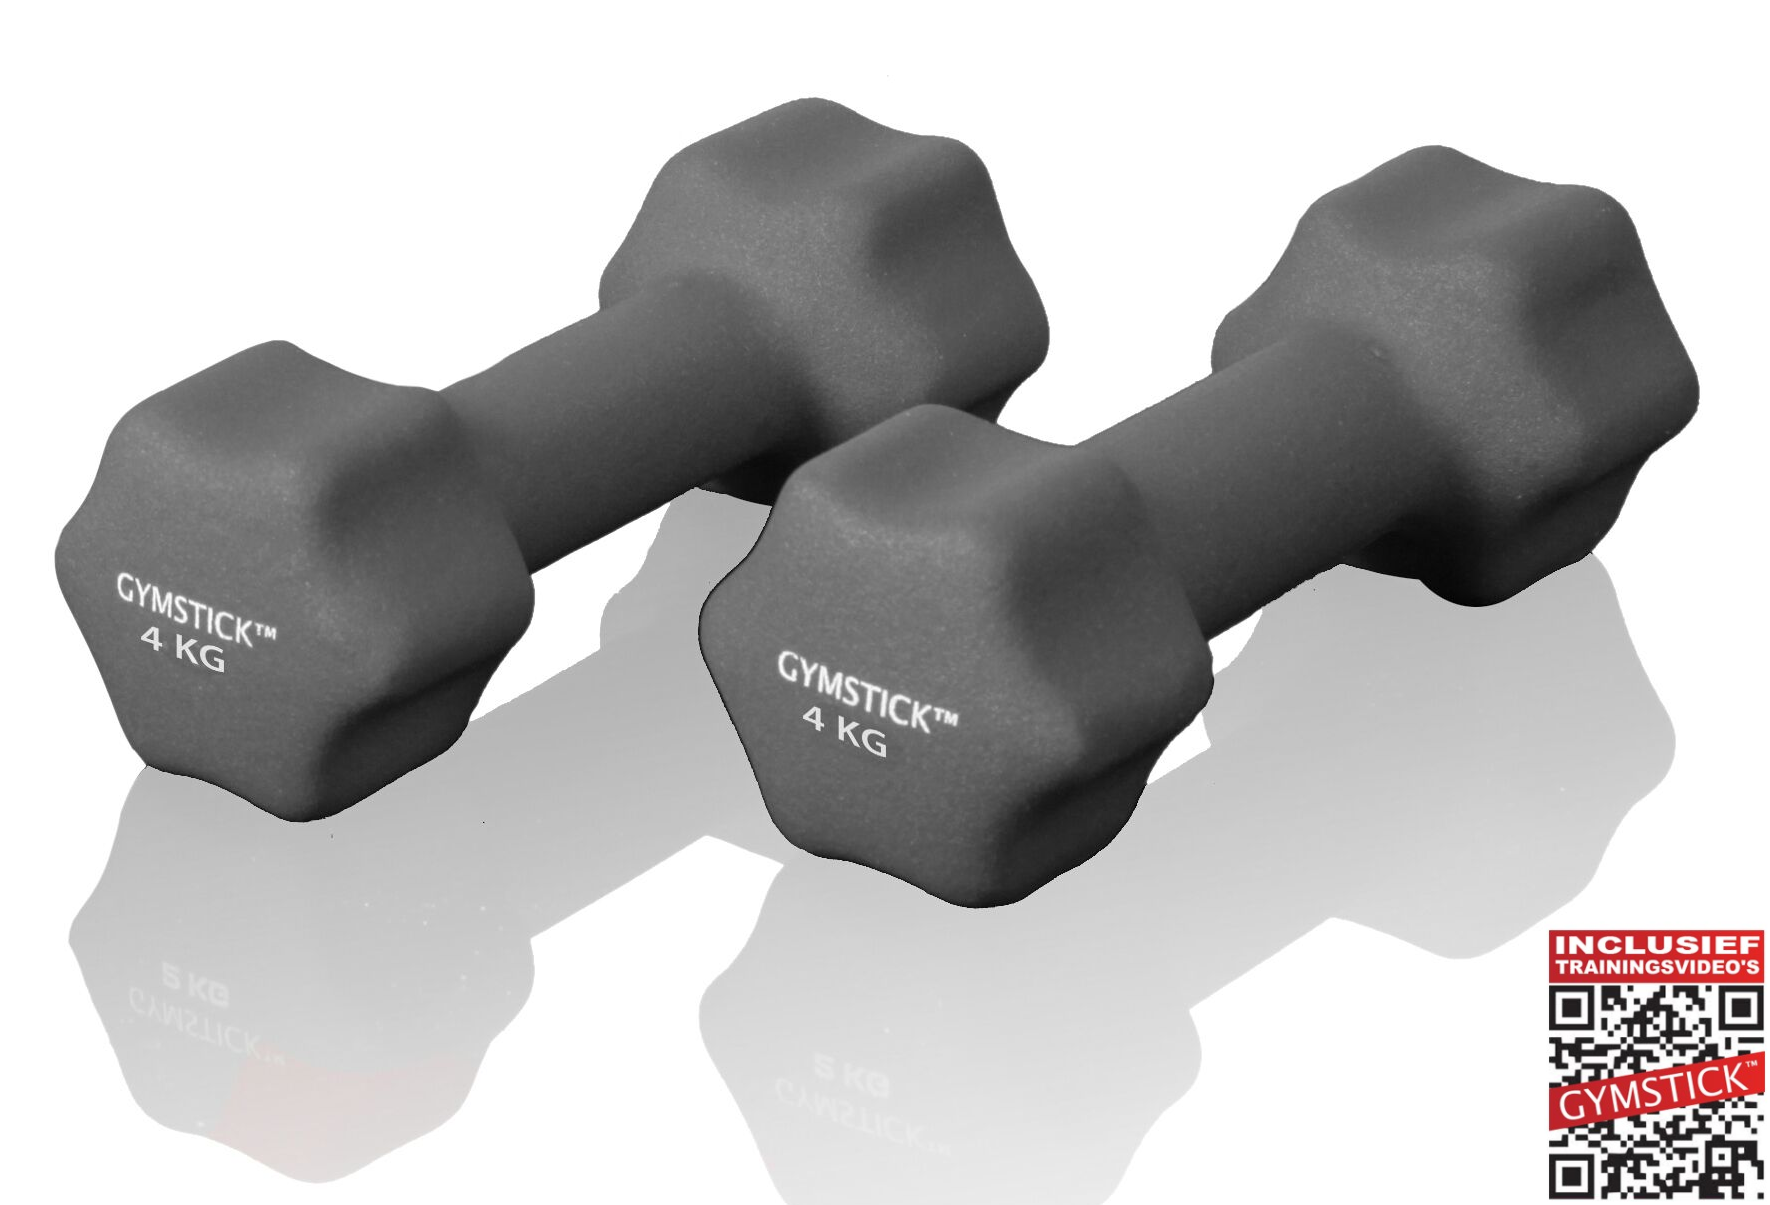 Gymstick dumbbell set (6 kg) + workout DVD